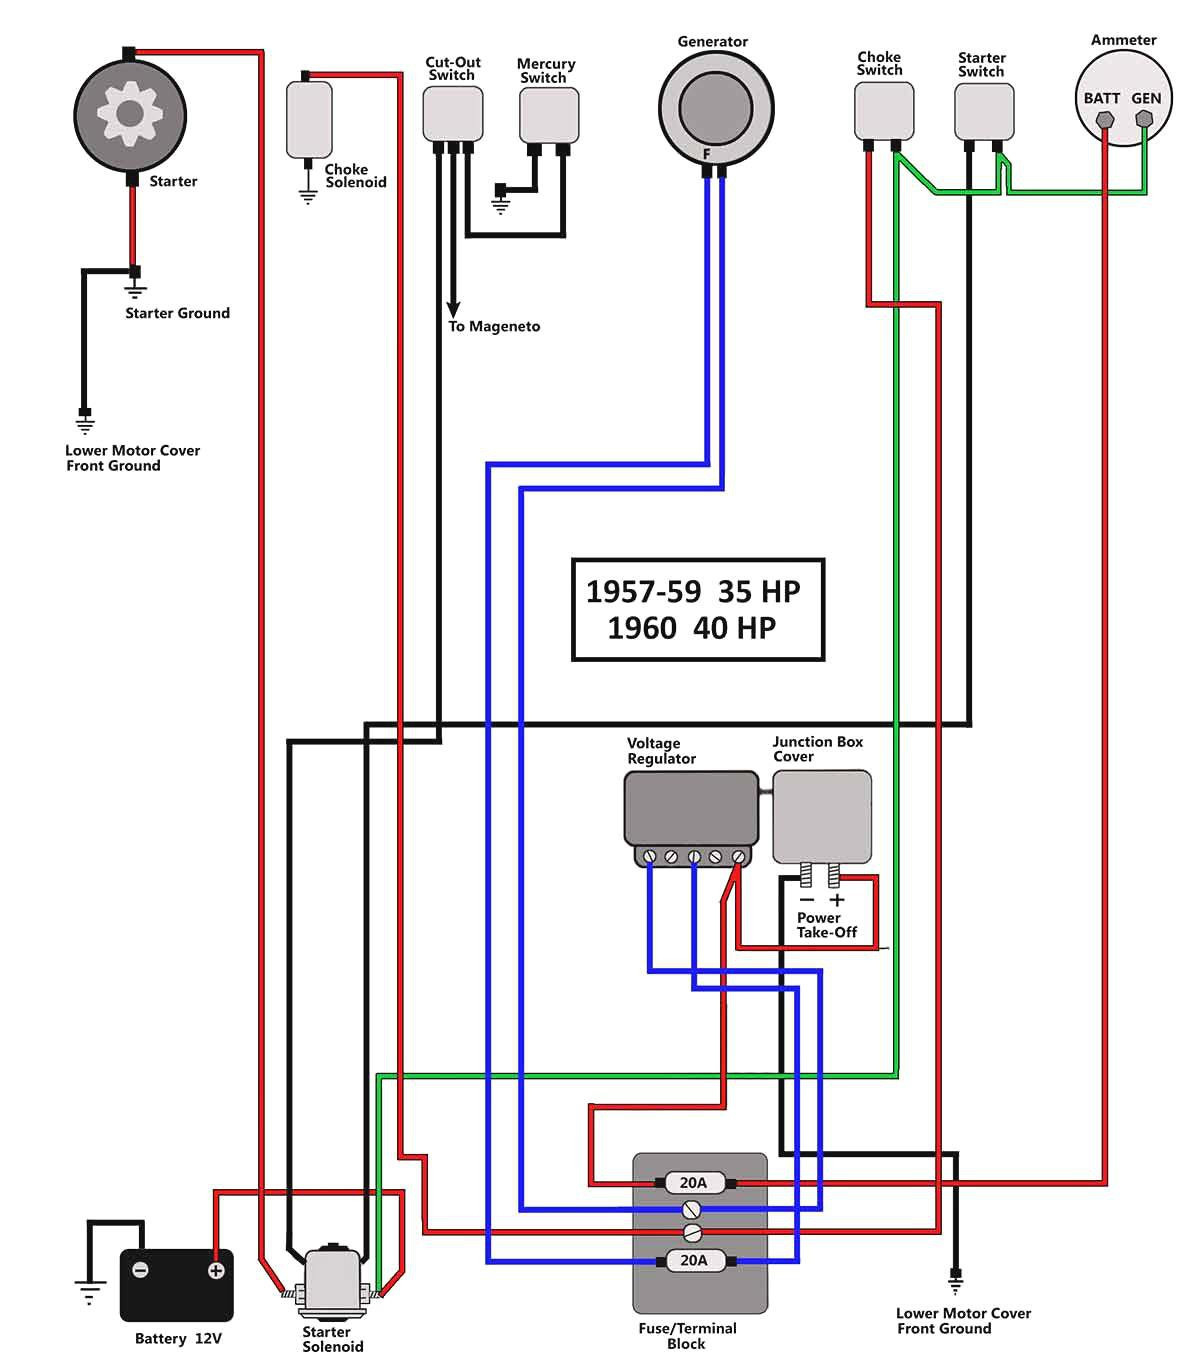 wiring diagram for mercury ignition switch wiring diagram for mercury 40 hp #11